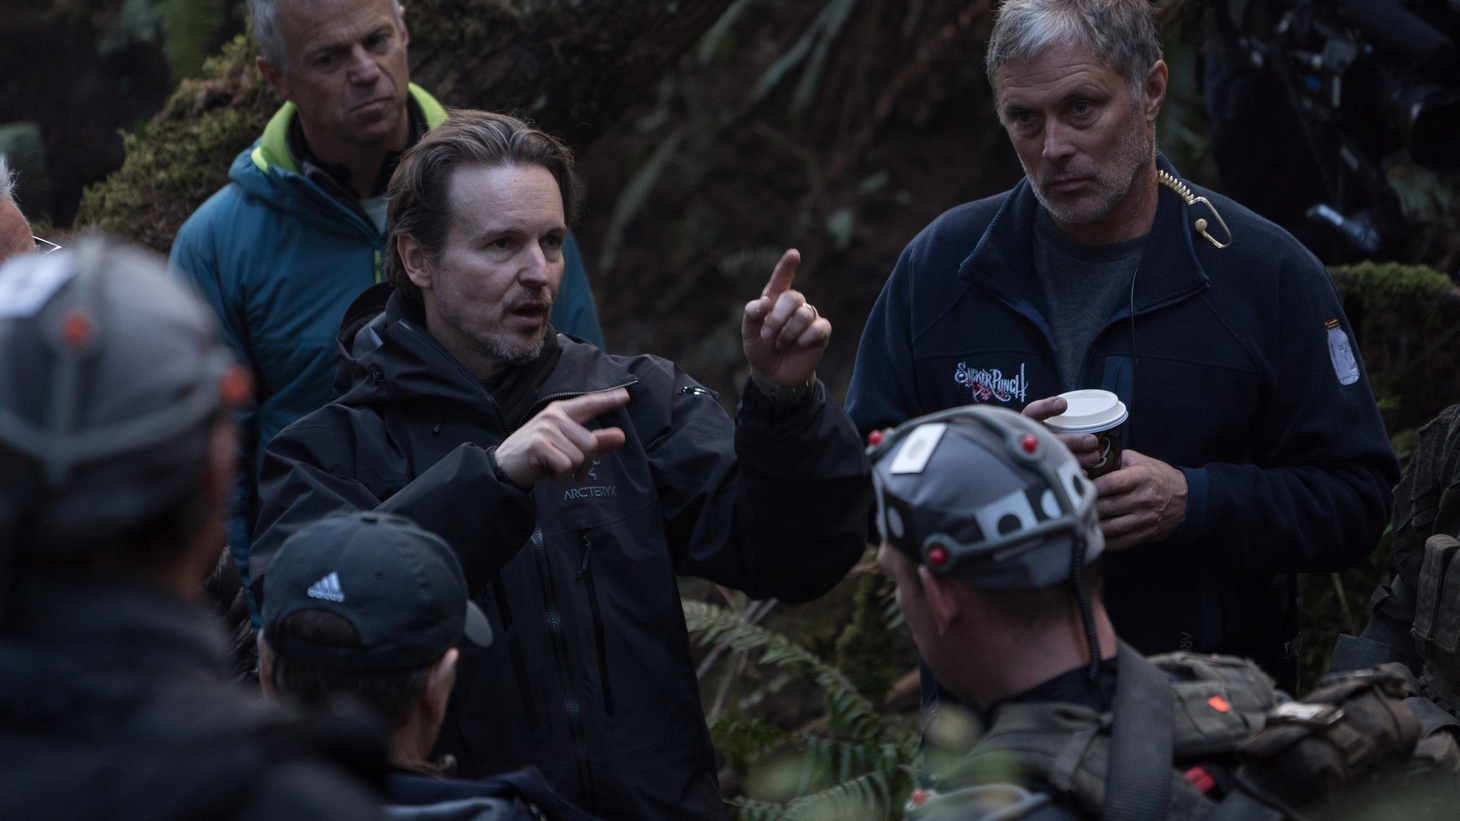 Filmmaker Matt Reeves knew his new film, War for the Planet of the Apes, had to work even without any help from computer-generated effects. He tells us about shooting whole film first with his actors in special motion capture suits, and shares early thoughts on his next project, The Batman.